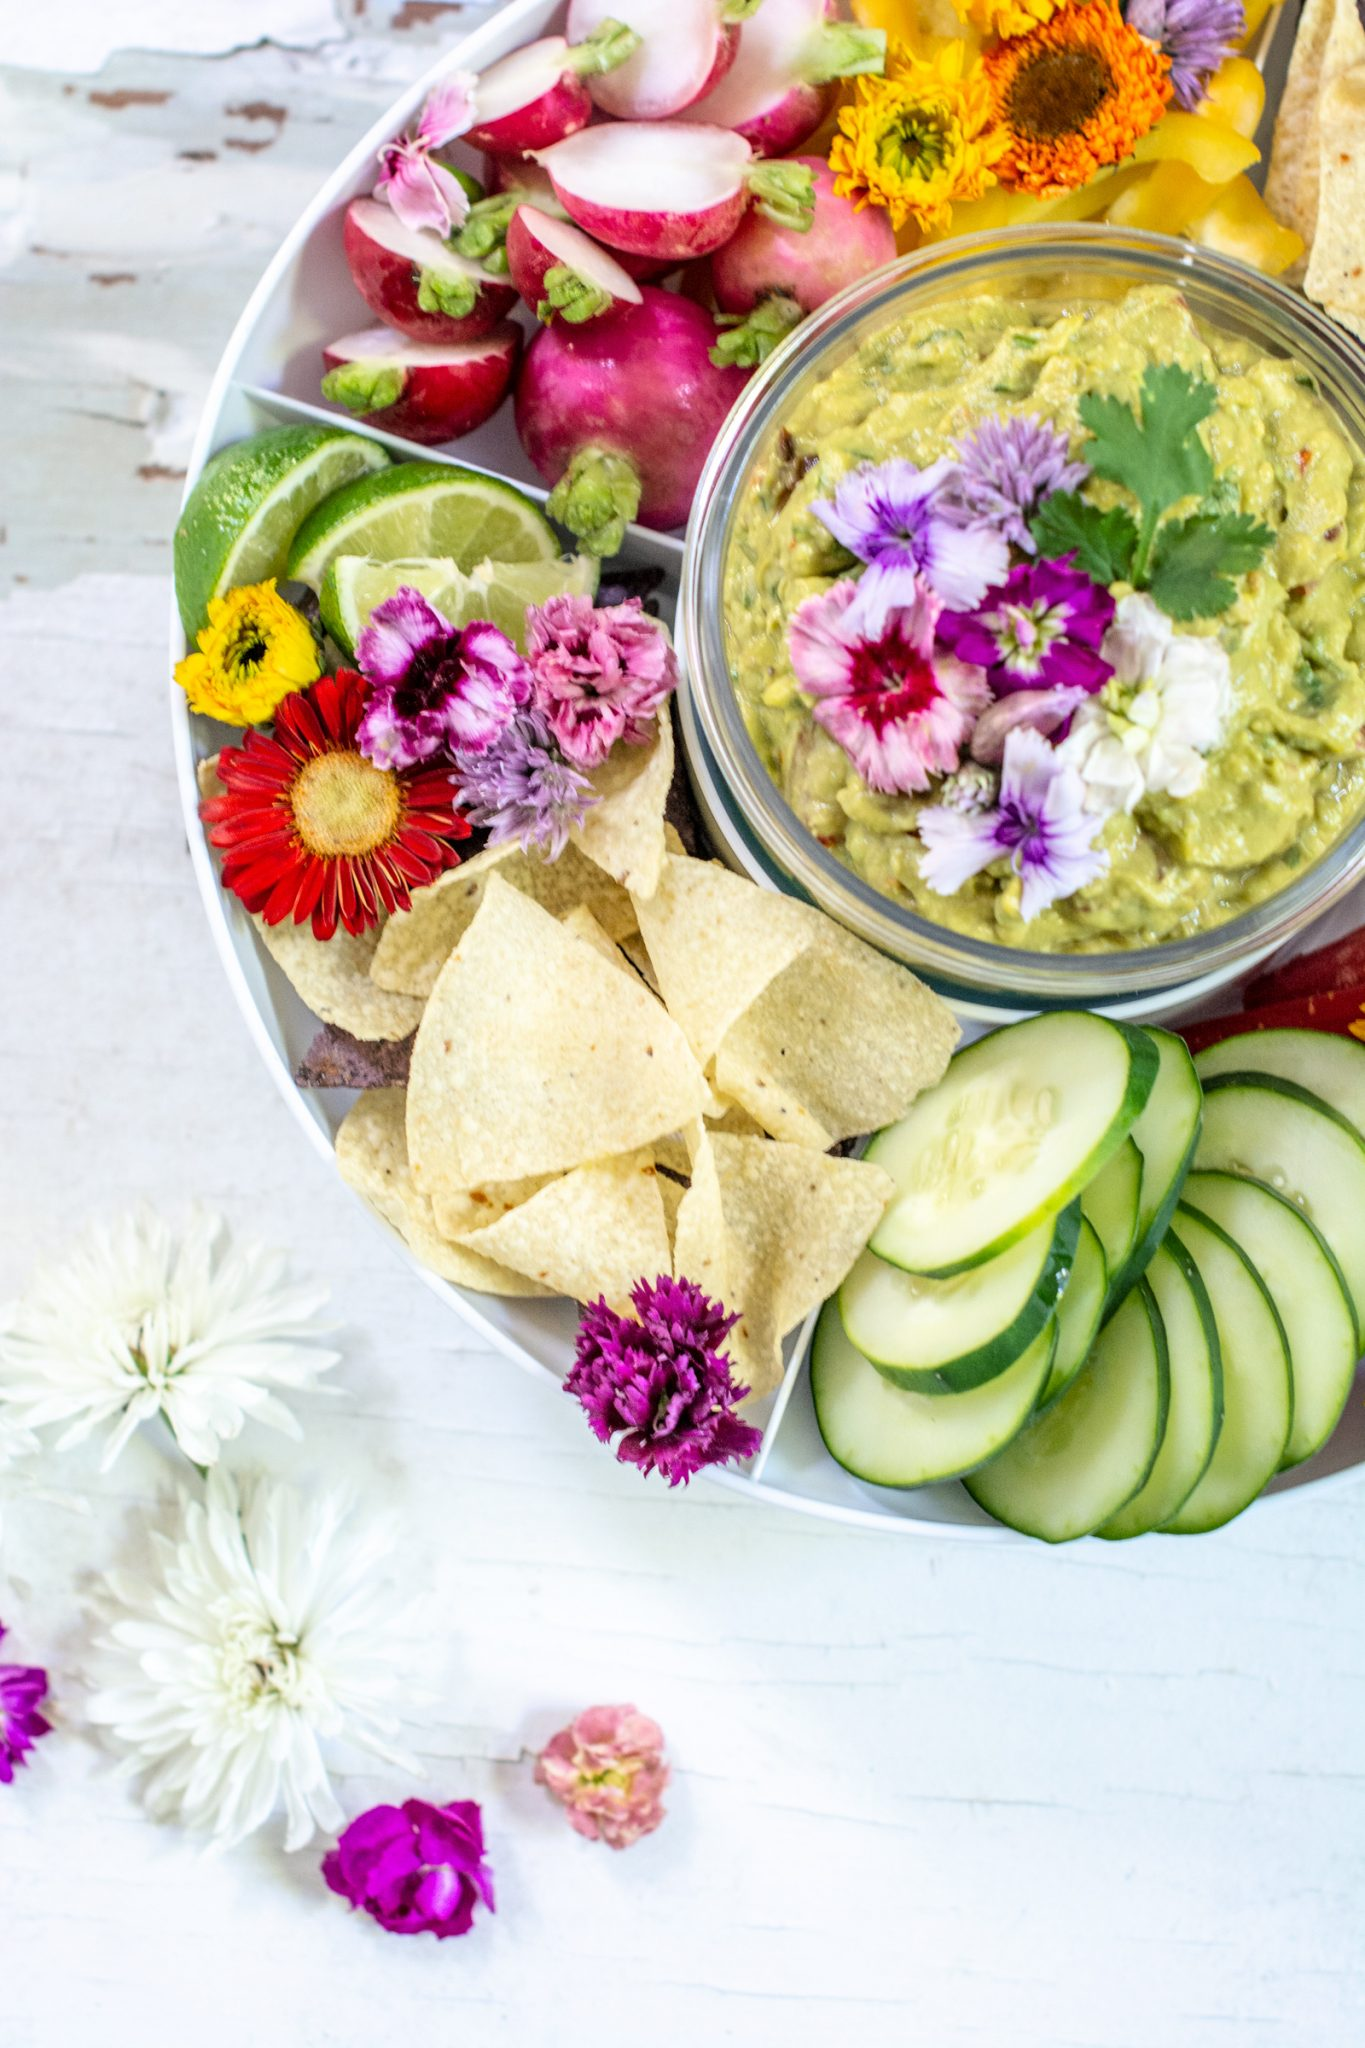 Fresh sliced vegetables surrounding a bowl of spicy guacamole on a white table.